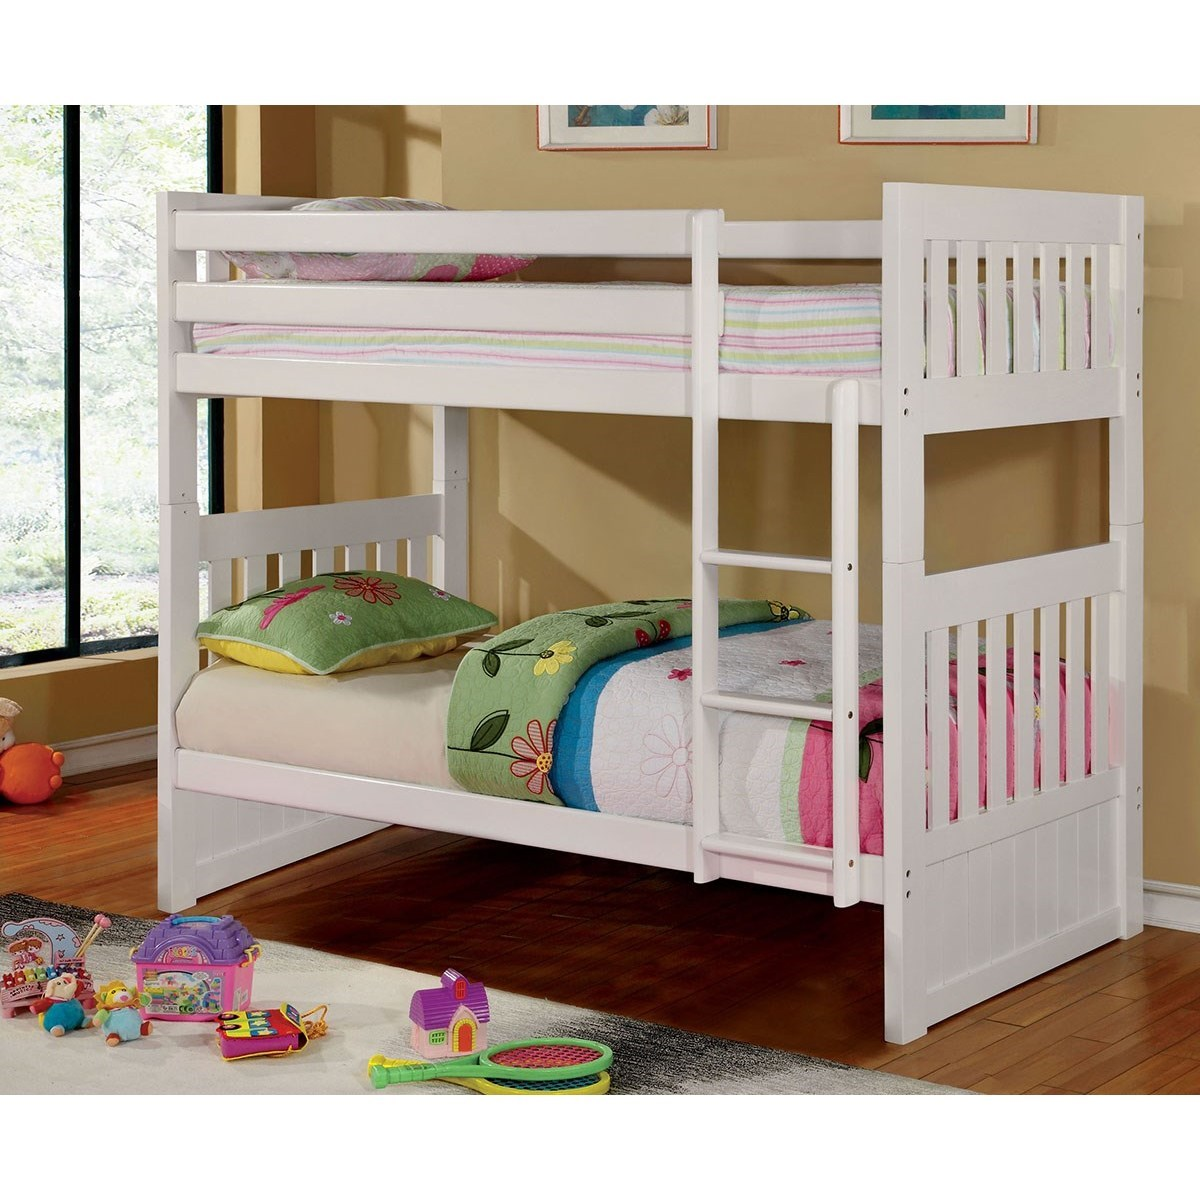 Canberra II Twin/Full Bunk Bed at Household Furniture